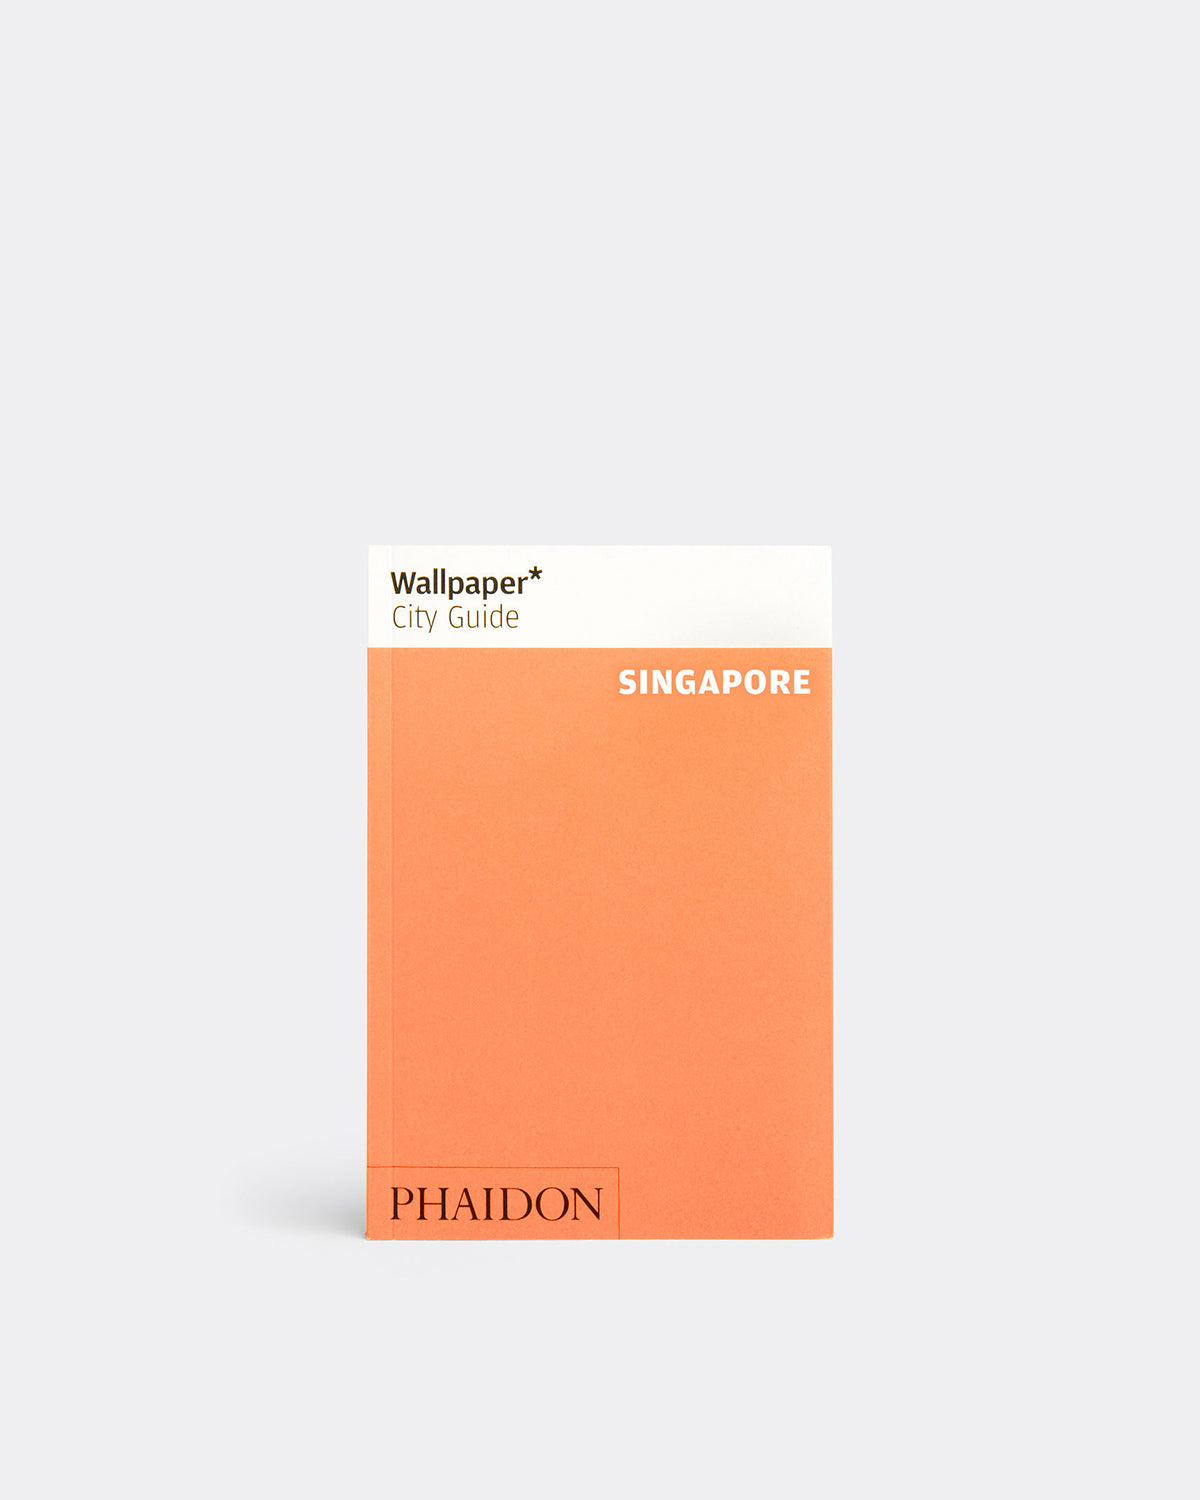 Wallpaper* - City Guide Singapore